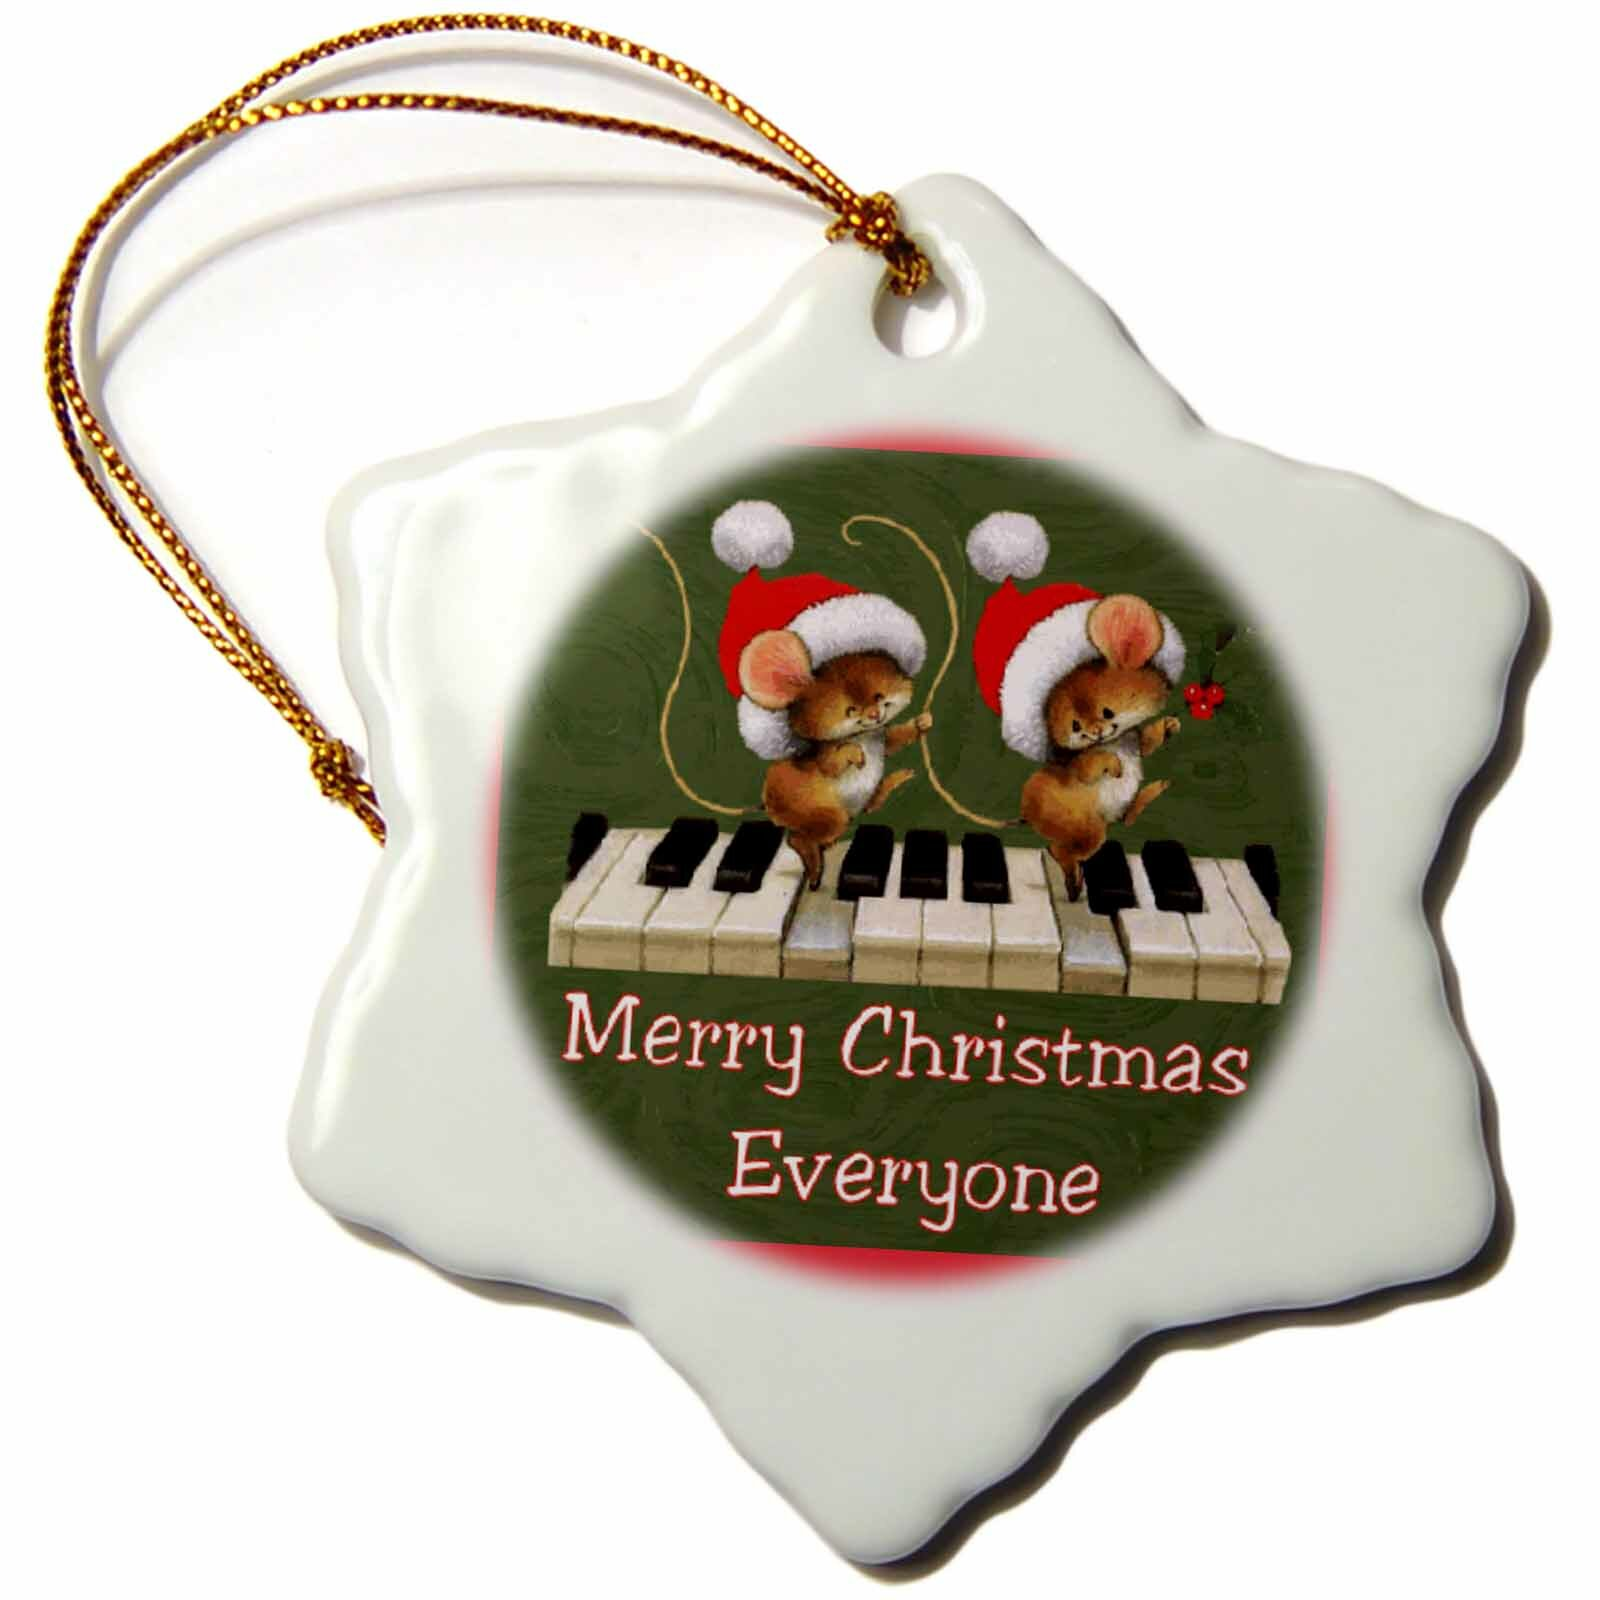 The Holiday Aisle Mice Dancing On A Keyboard Snowflake Holiday Shaped Ornament Wayfair